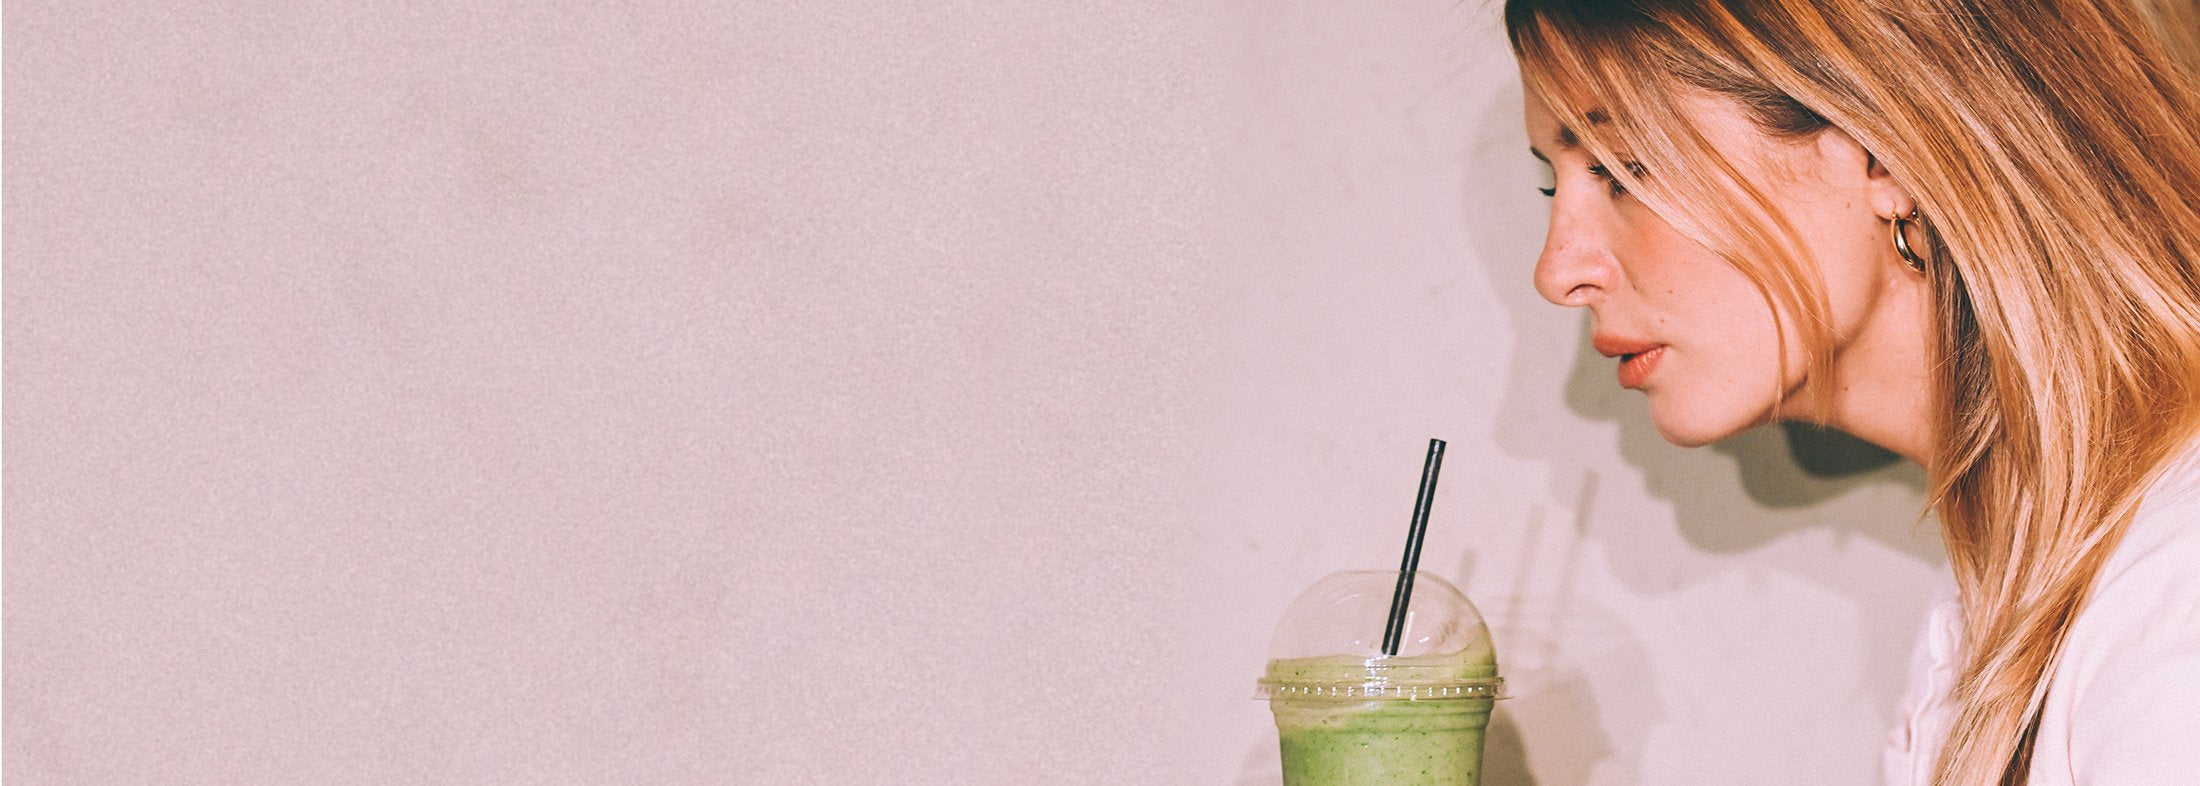 Woman drinking healthy smoothie to prevent ageing hair loss